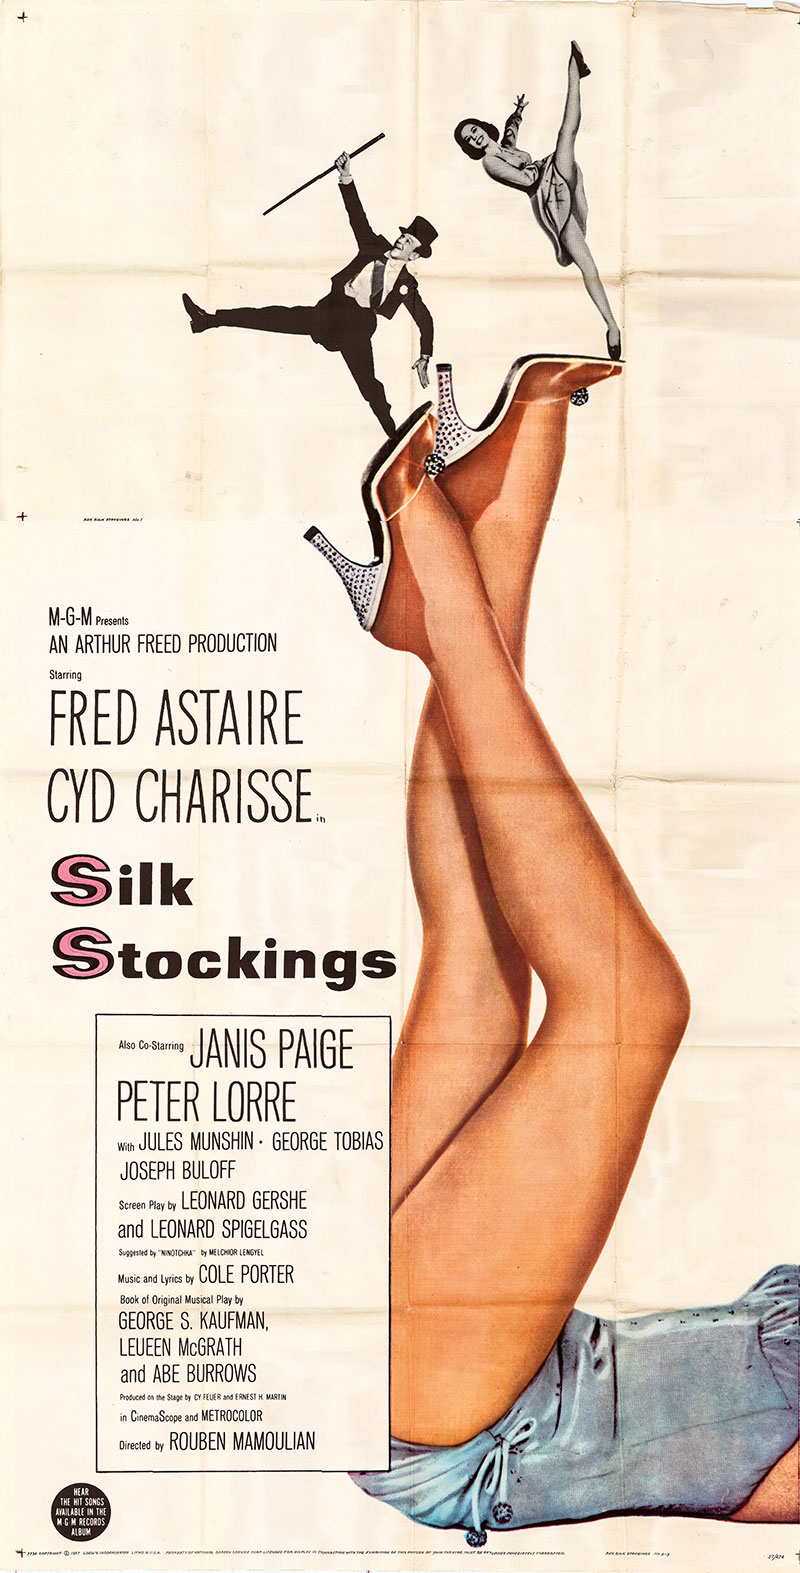 Pictured is a US three-sheet poster for the 1957 Rouben Mamoulian film Silk Stockings starring Fred Astaire as Steve Canfield.